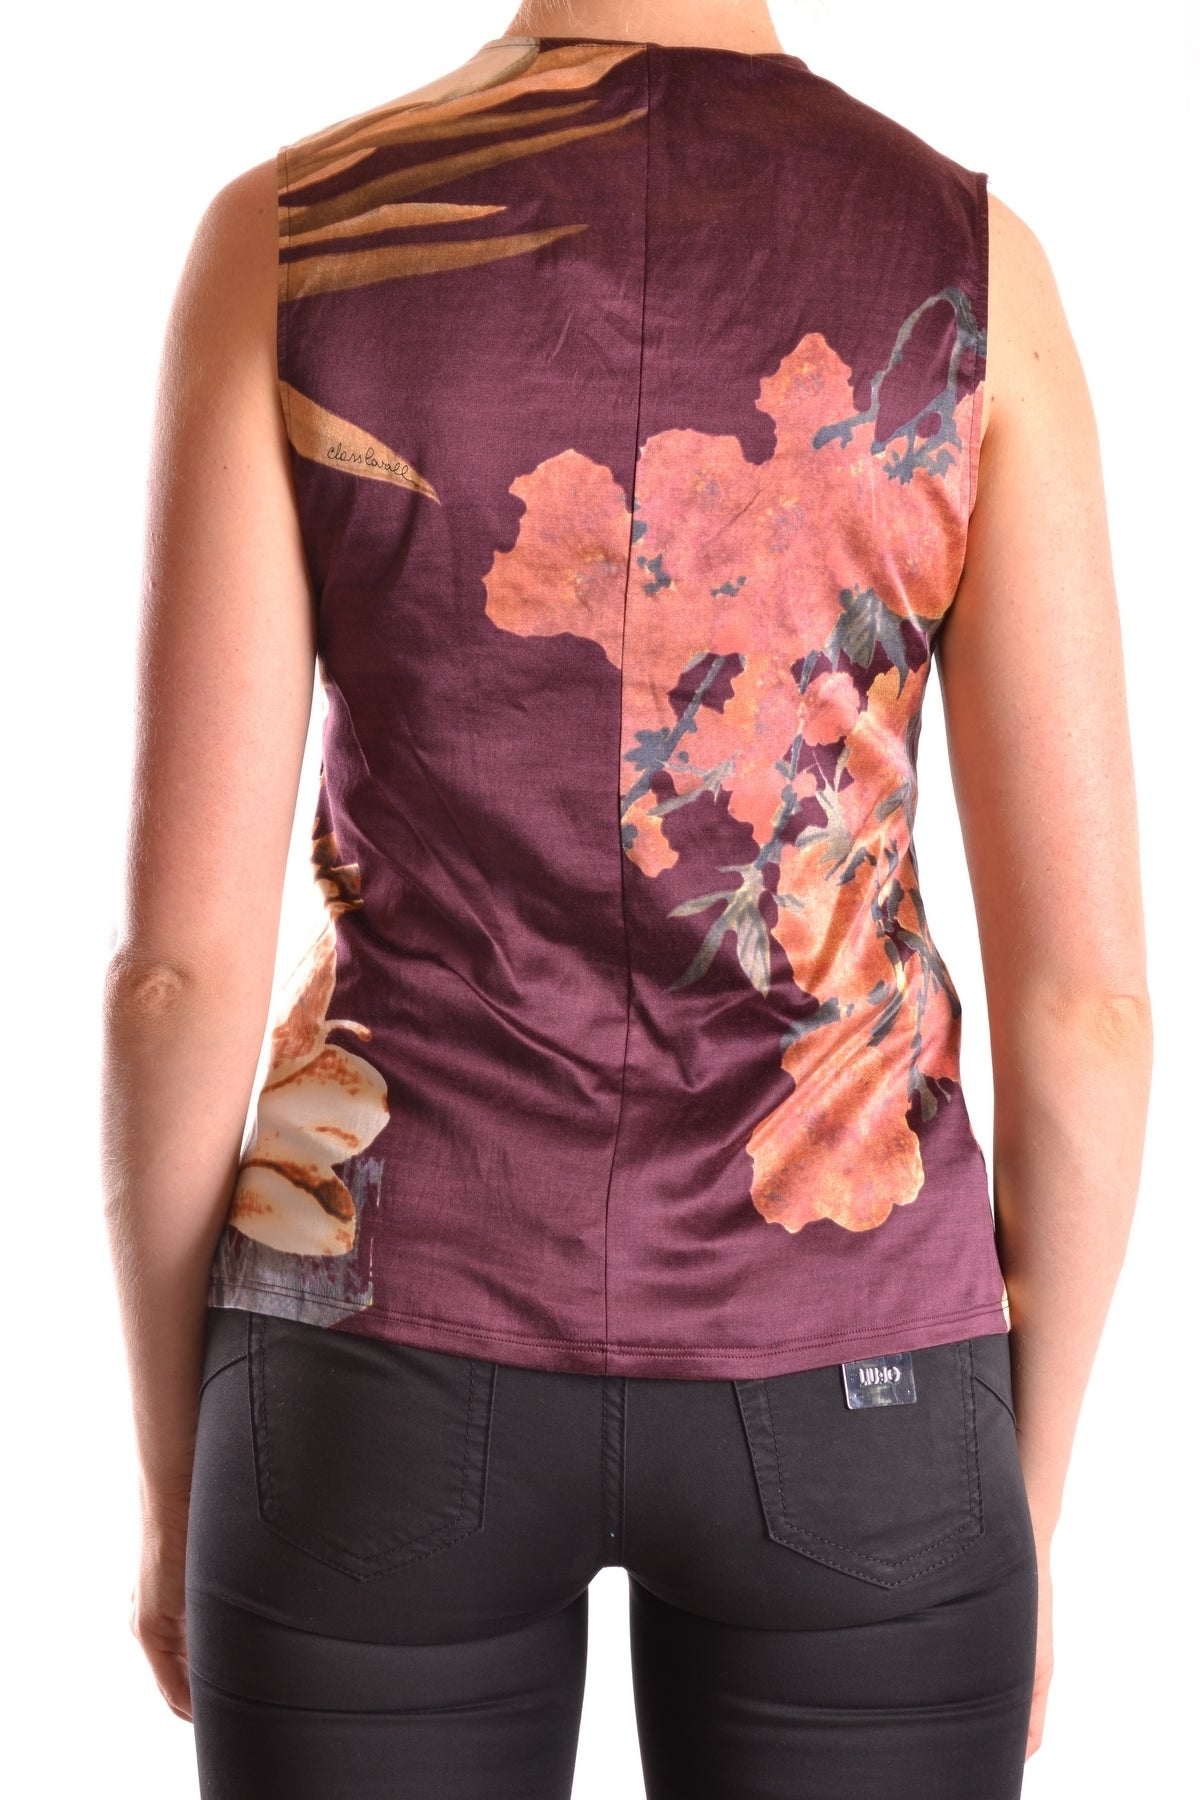 Tshirt No Sleeves Class Cavalli-No sleeves - WOMAN-Product Details Terms: New With LabelYear: 2017Main Color: BurgundyGender: WomanMade In: ItalySize: ItSeason: Spring / SummerClothing Type: T-ShirtComposition: Cotton 58%, Elastane 7%, Silk 35%-Keyomi-Sook